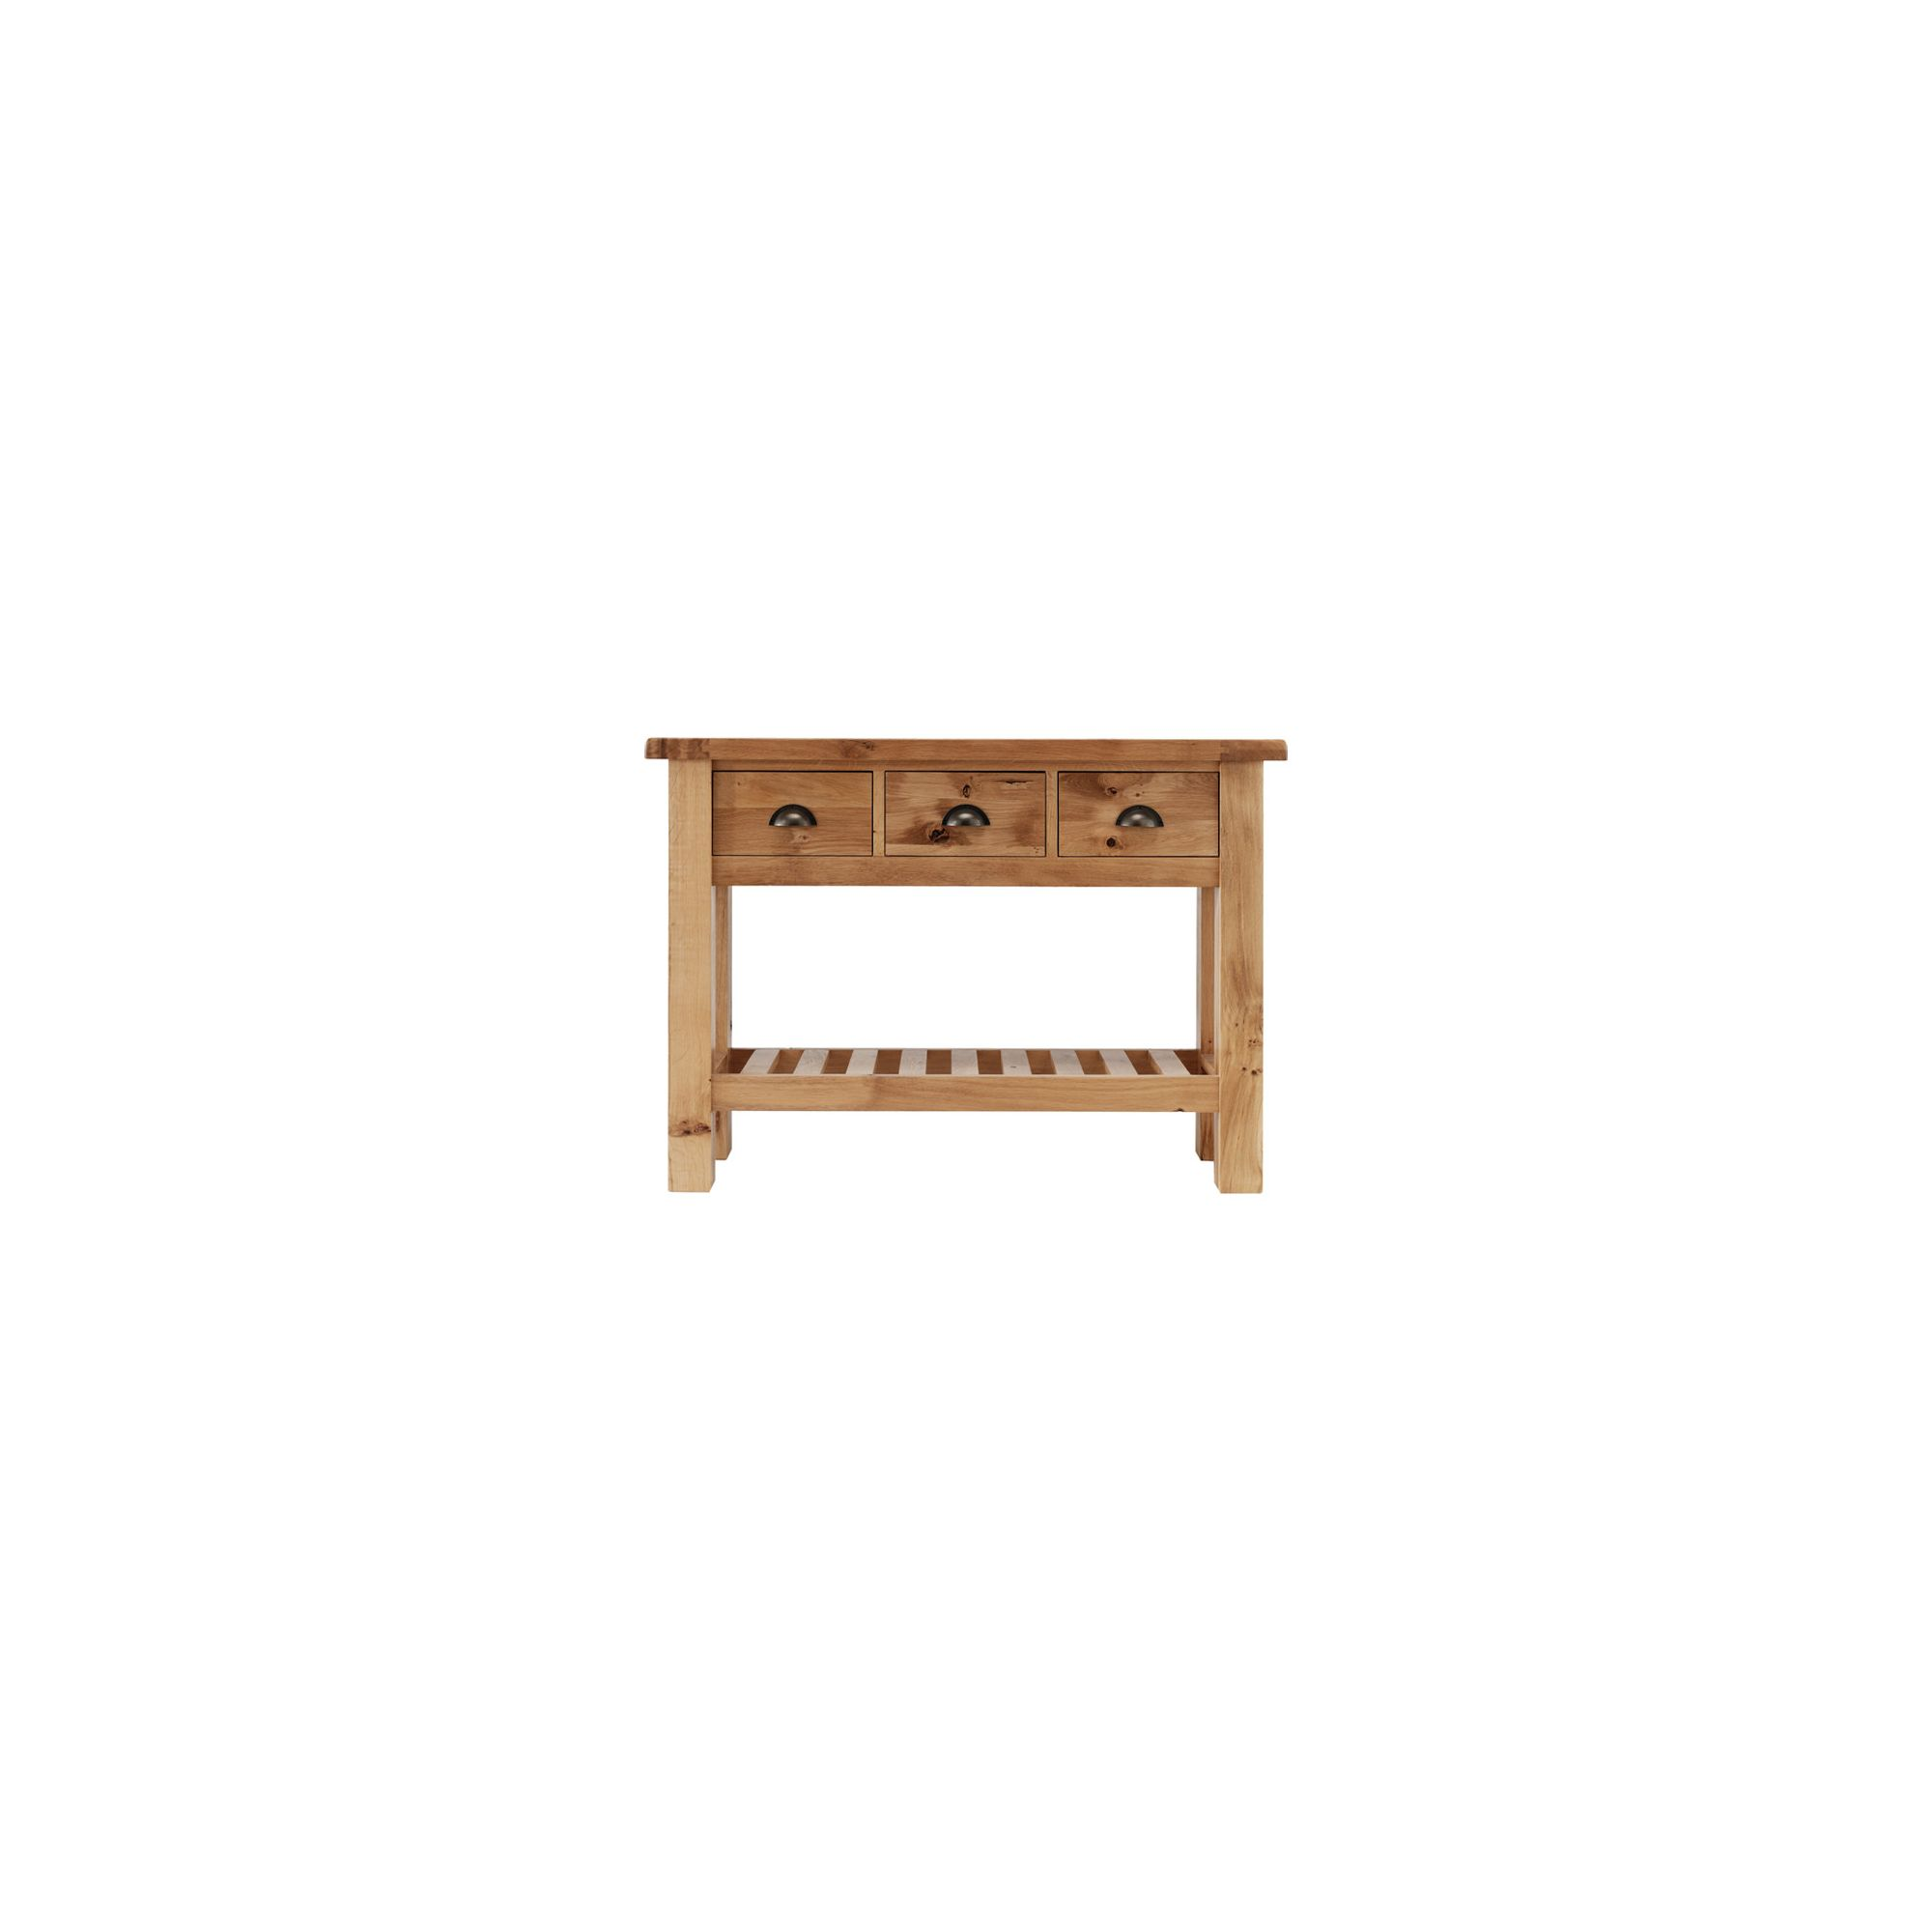 Originals Normandy Console Table at Tesco Direct